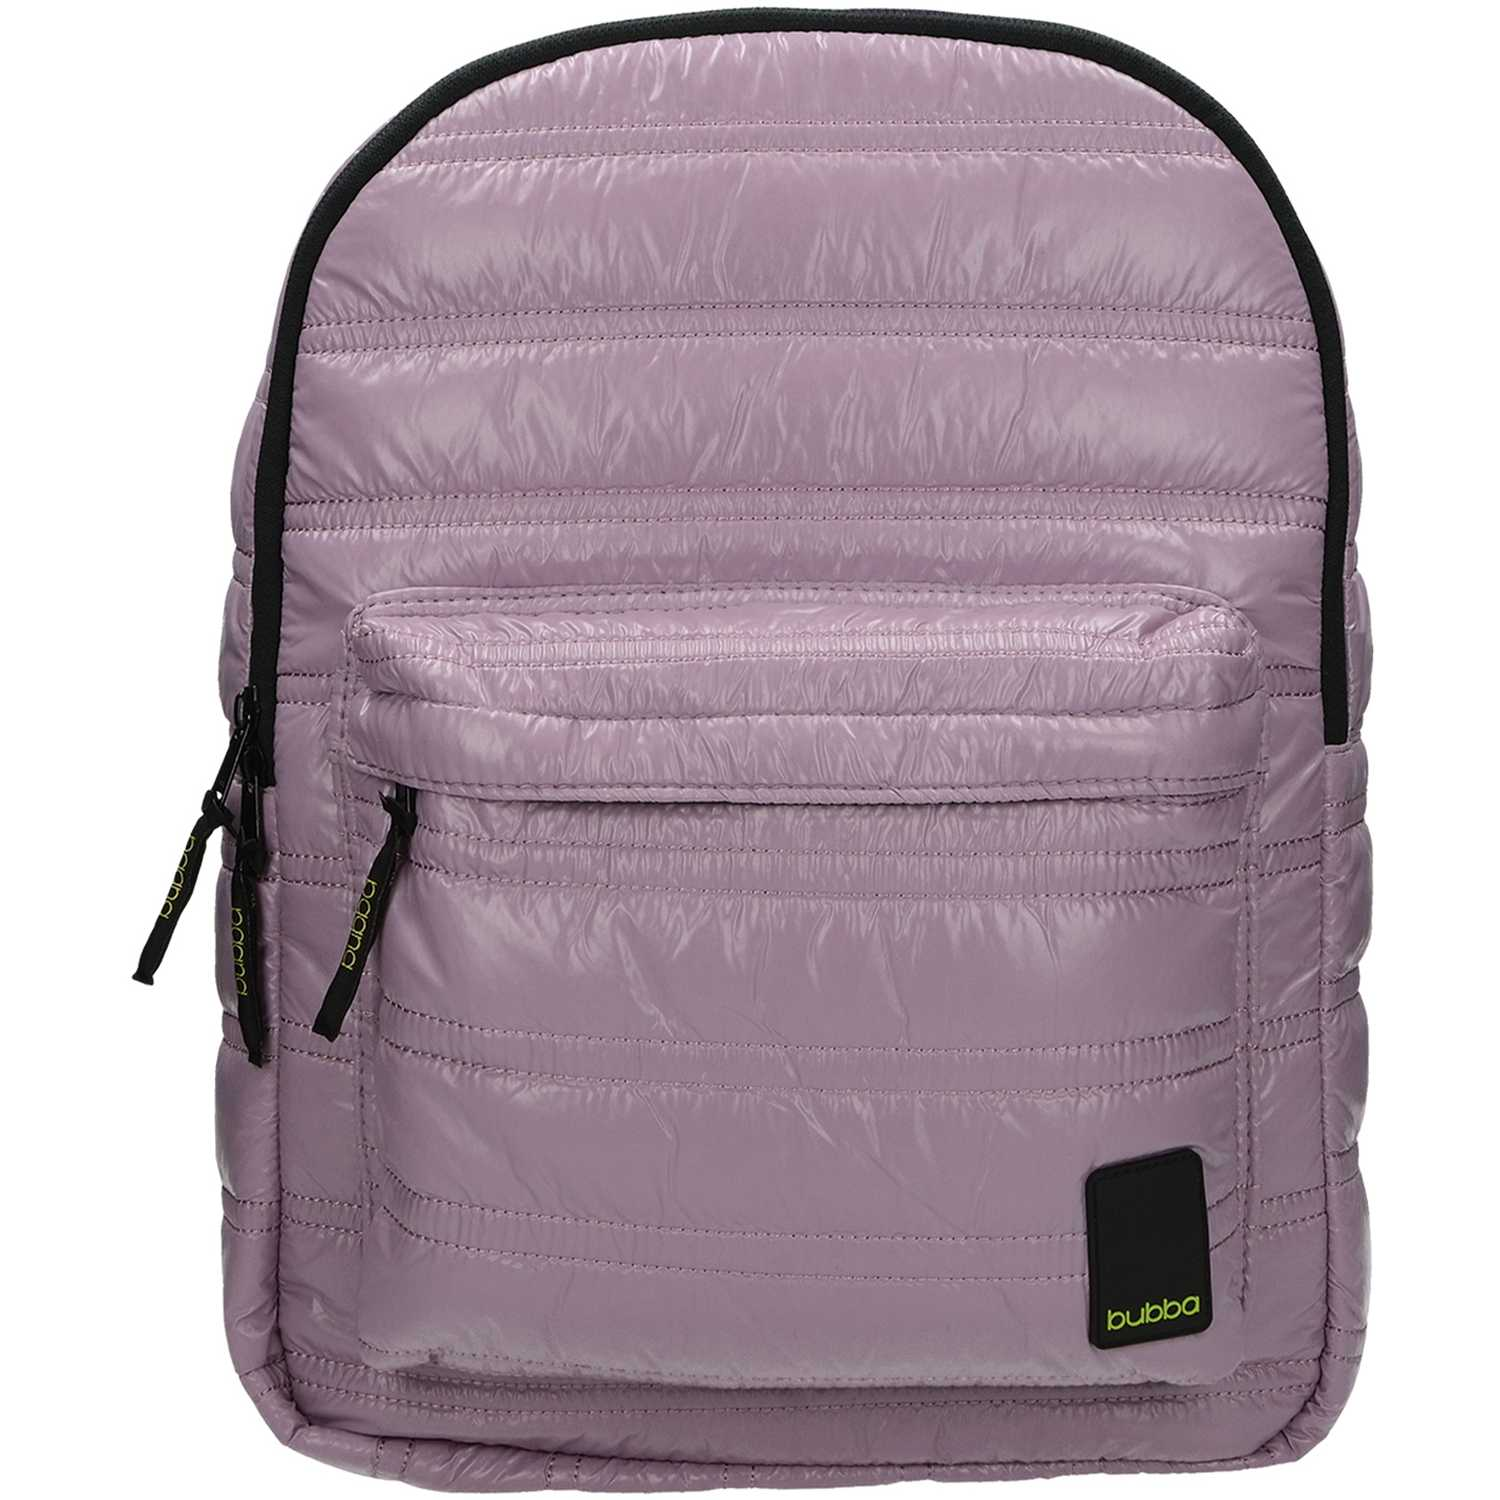 BUBBA mochila bubba classic regular Morado Mochilas Multipropósitos